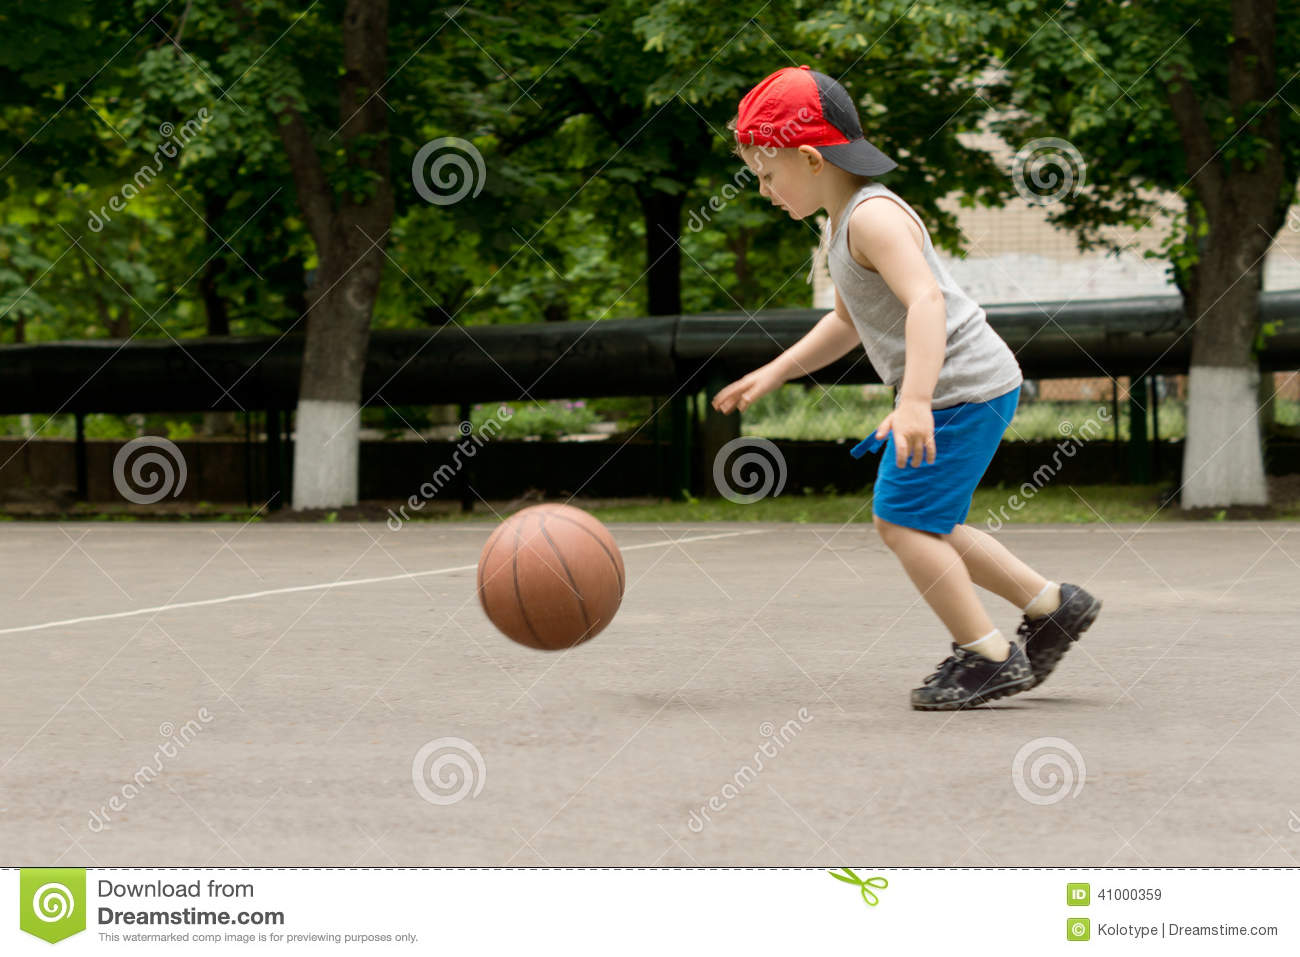 Small Boy Bouncing A Basketball On A Court Stock Photo